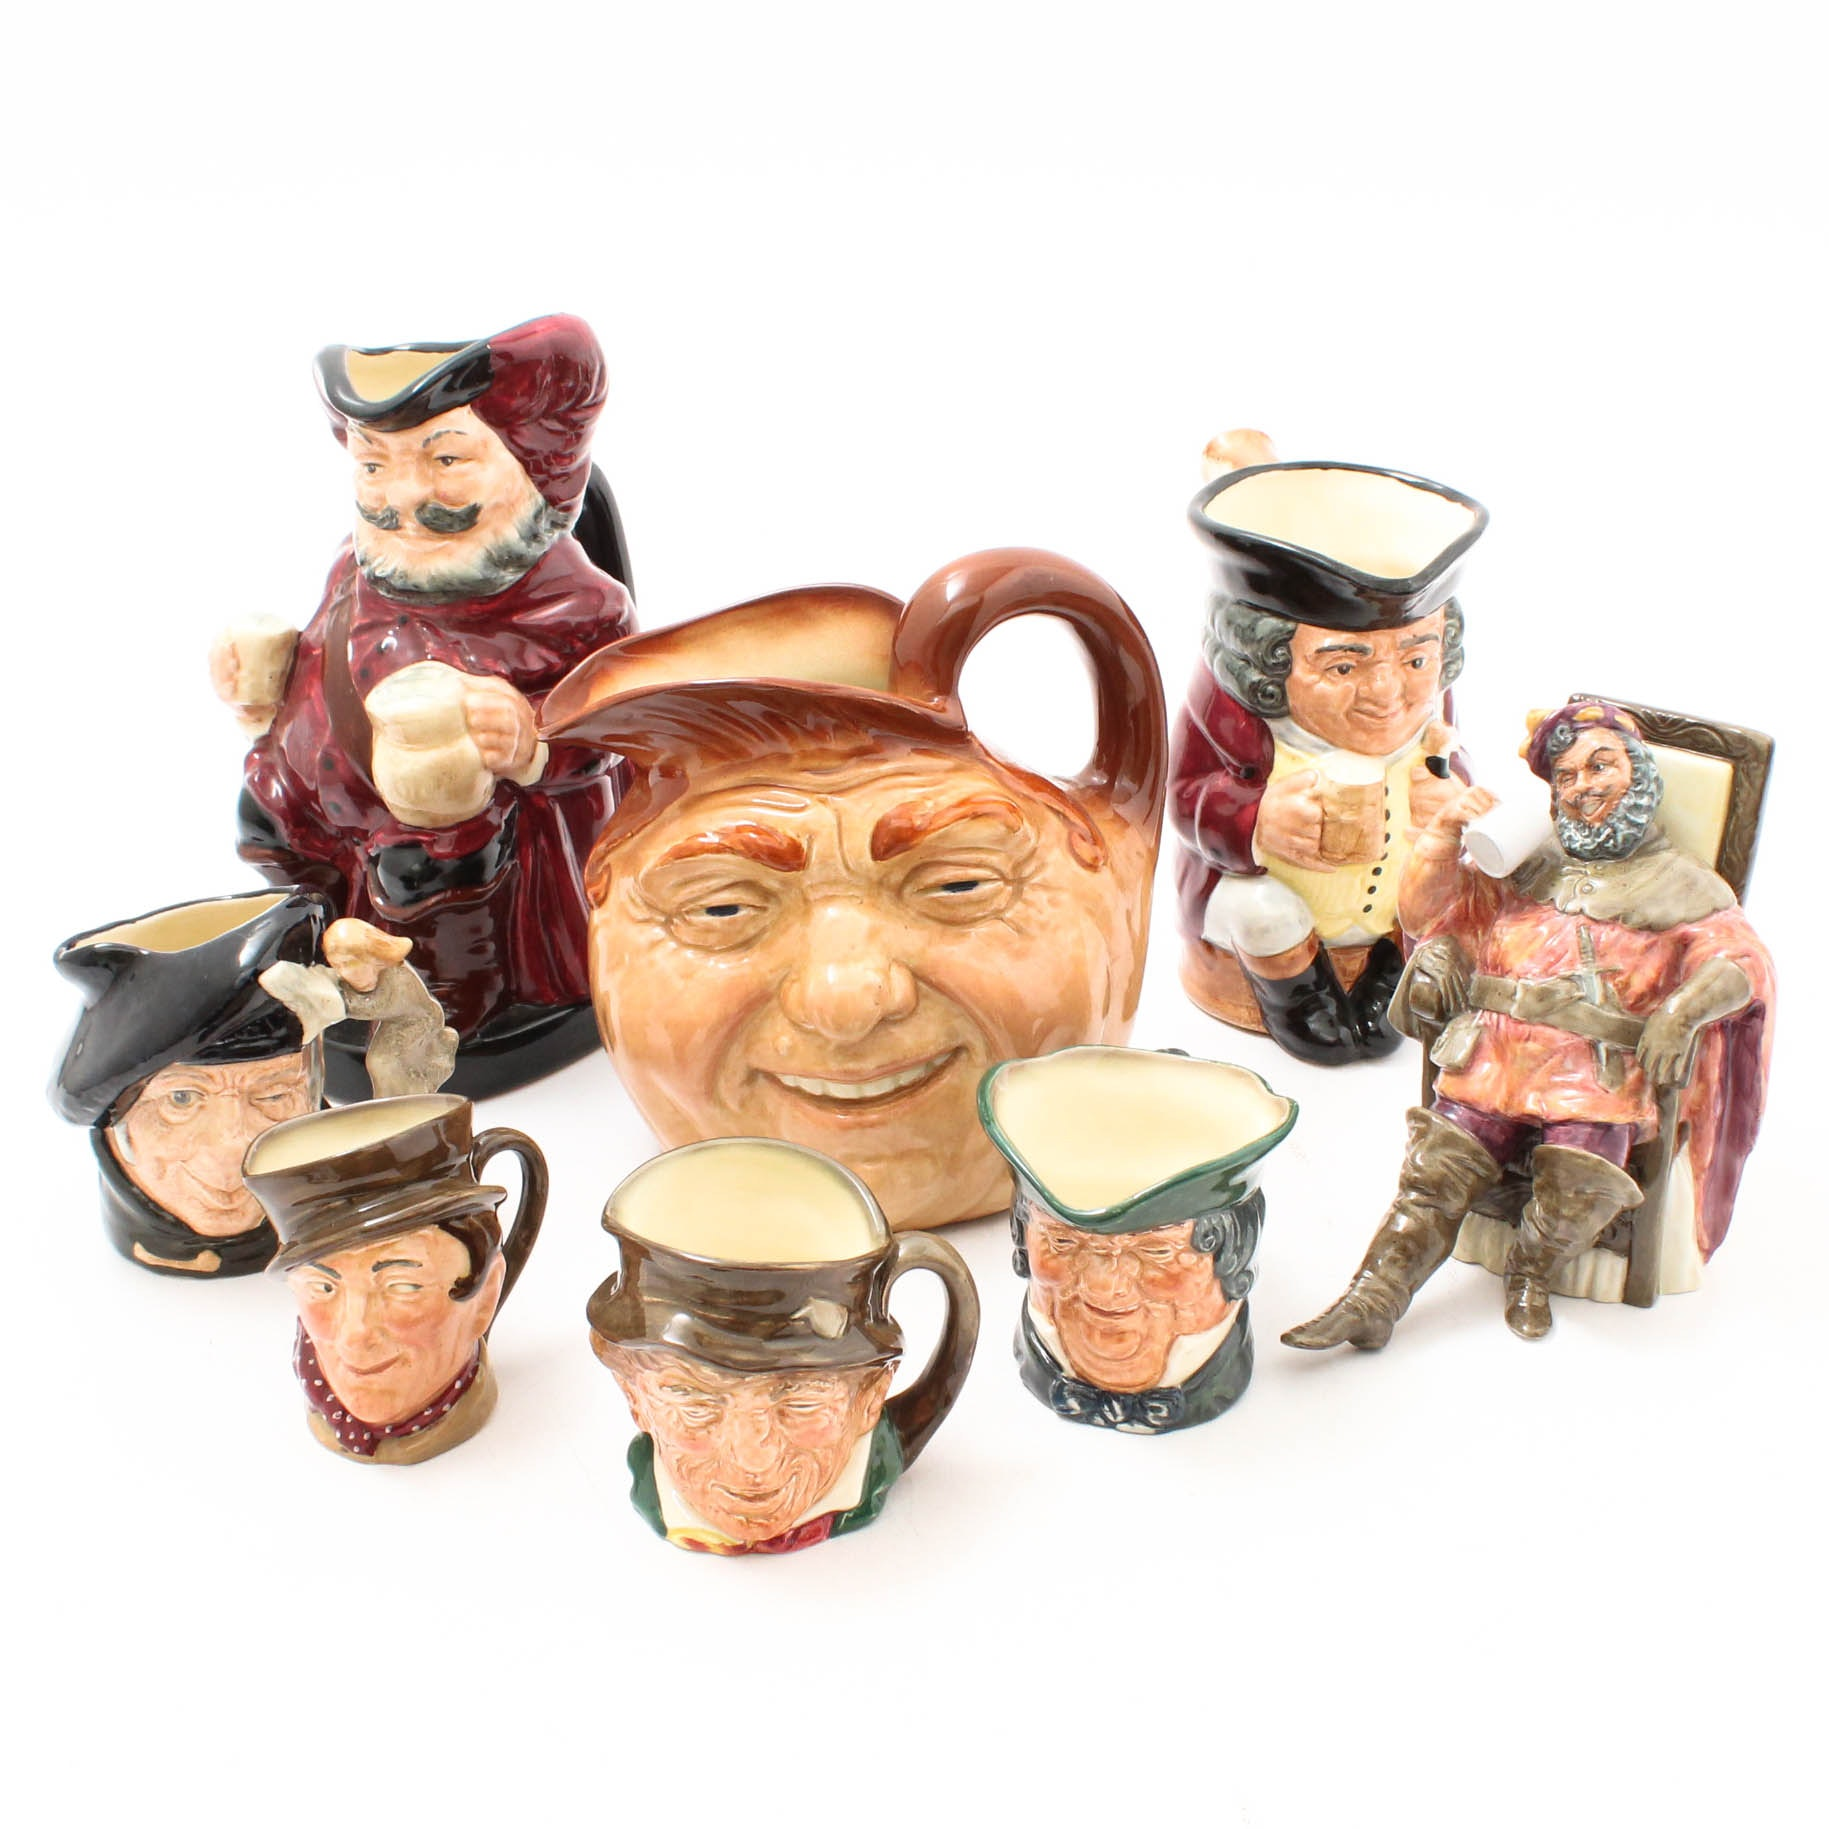 Royal Doulton Toby Jugs and Figurine